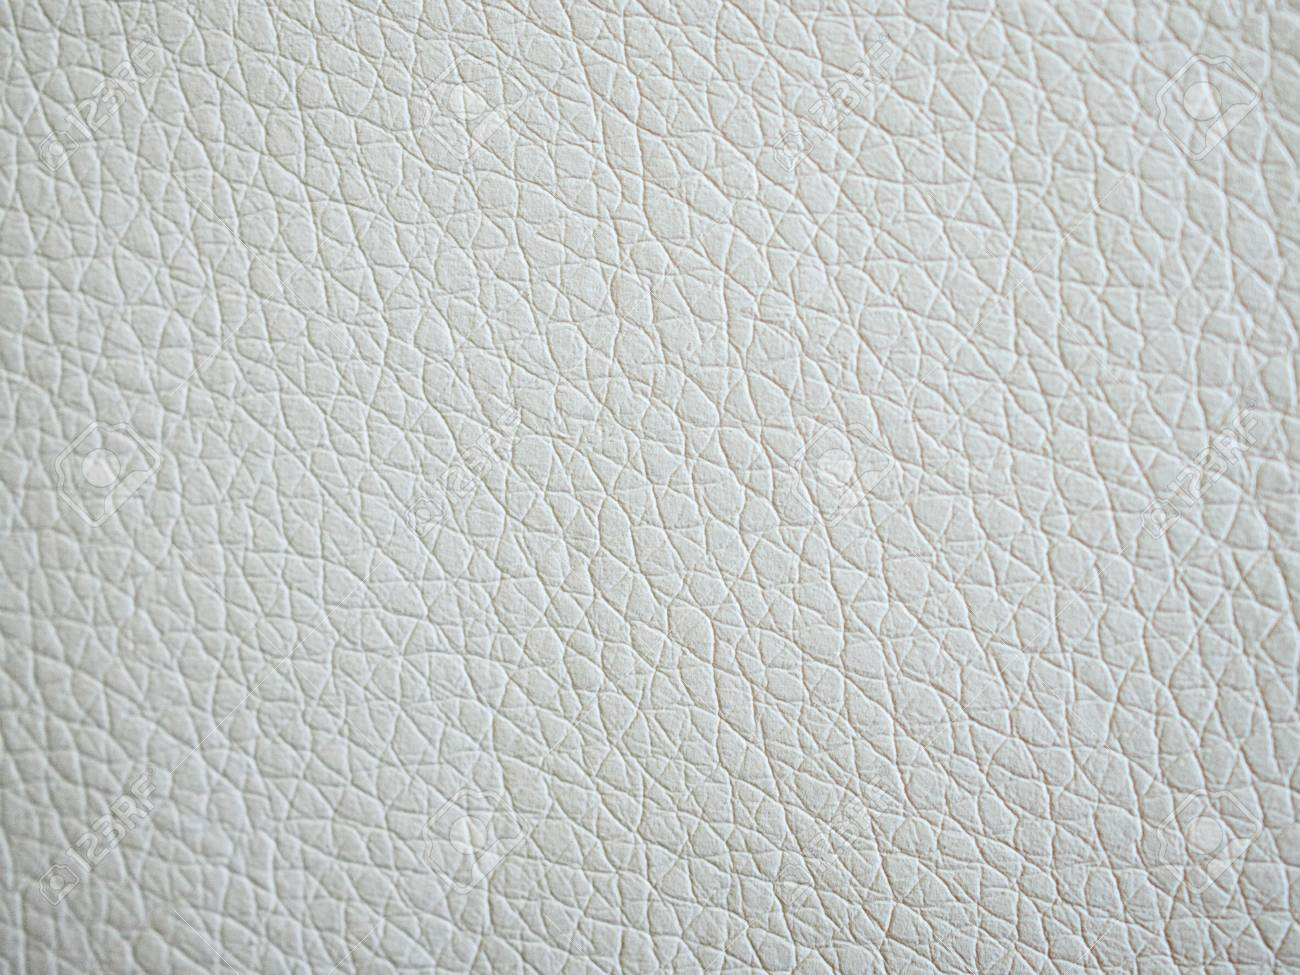 White Leather Texture For Background Quality Interior Vintage 1300x975